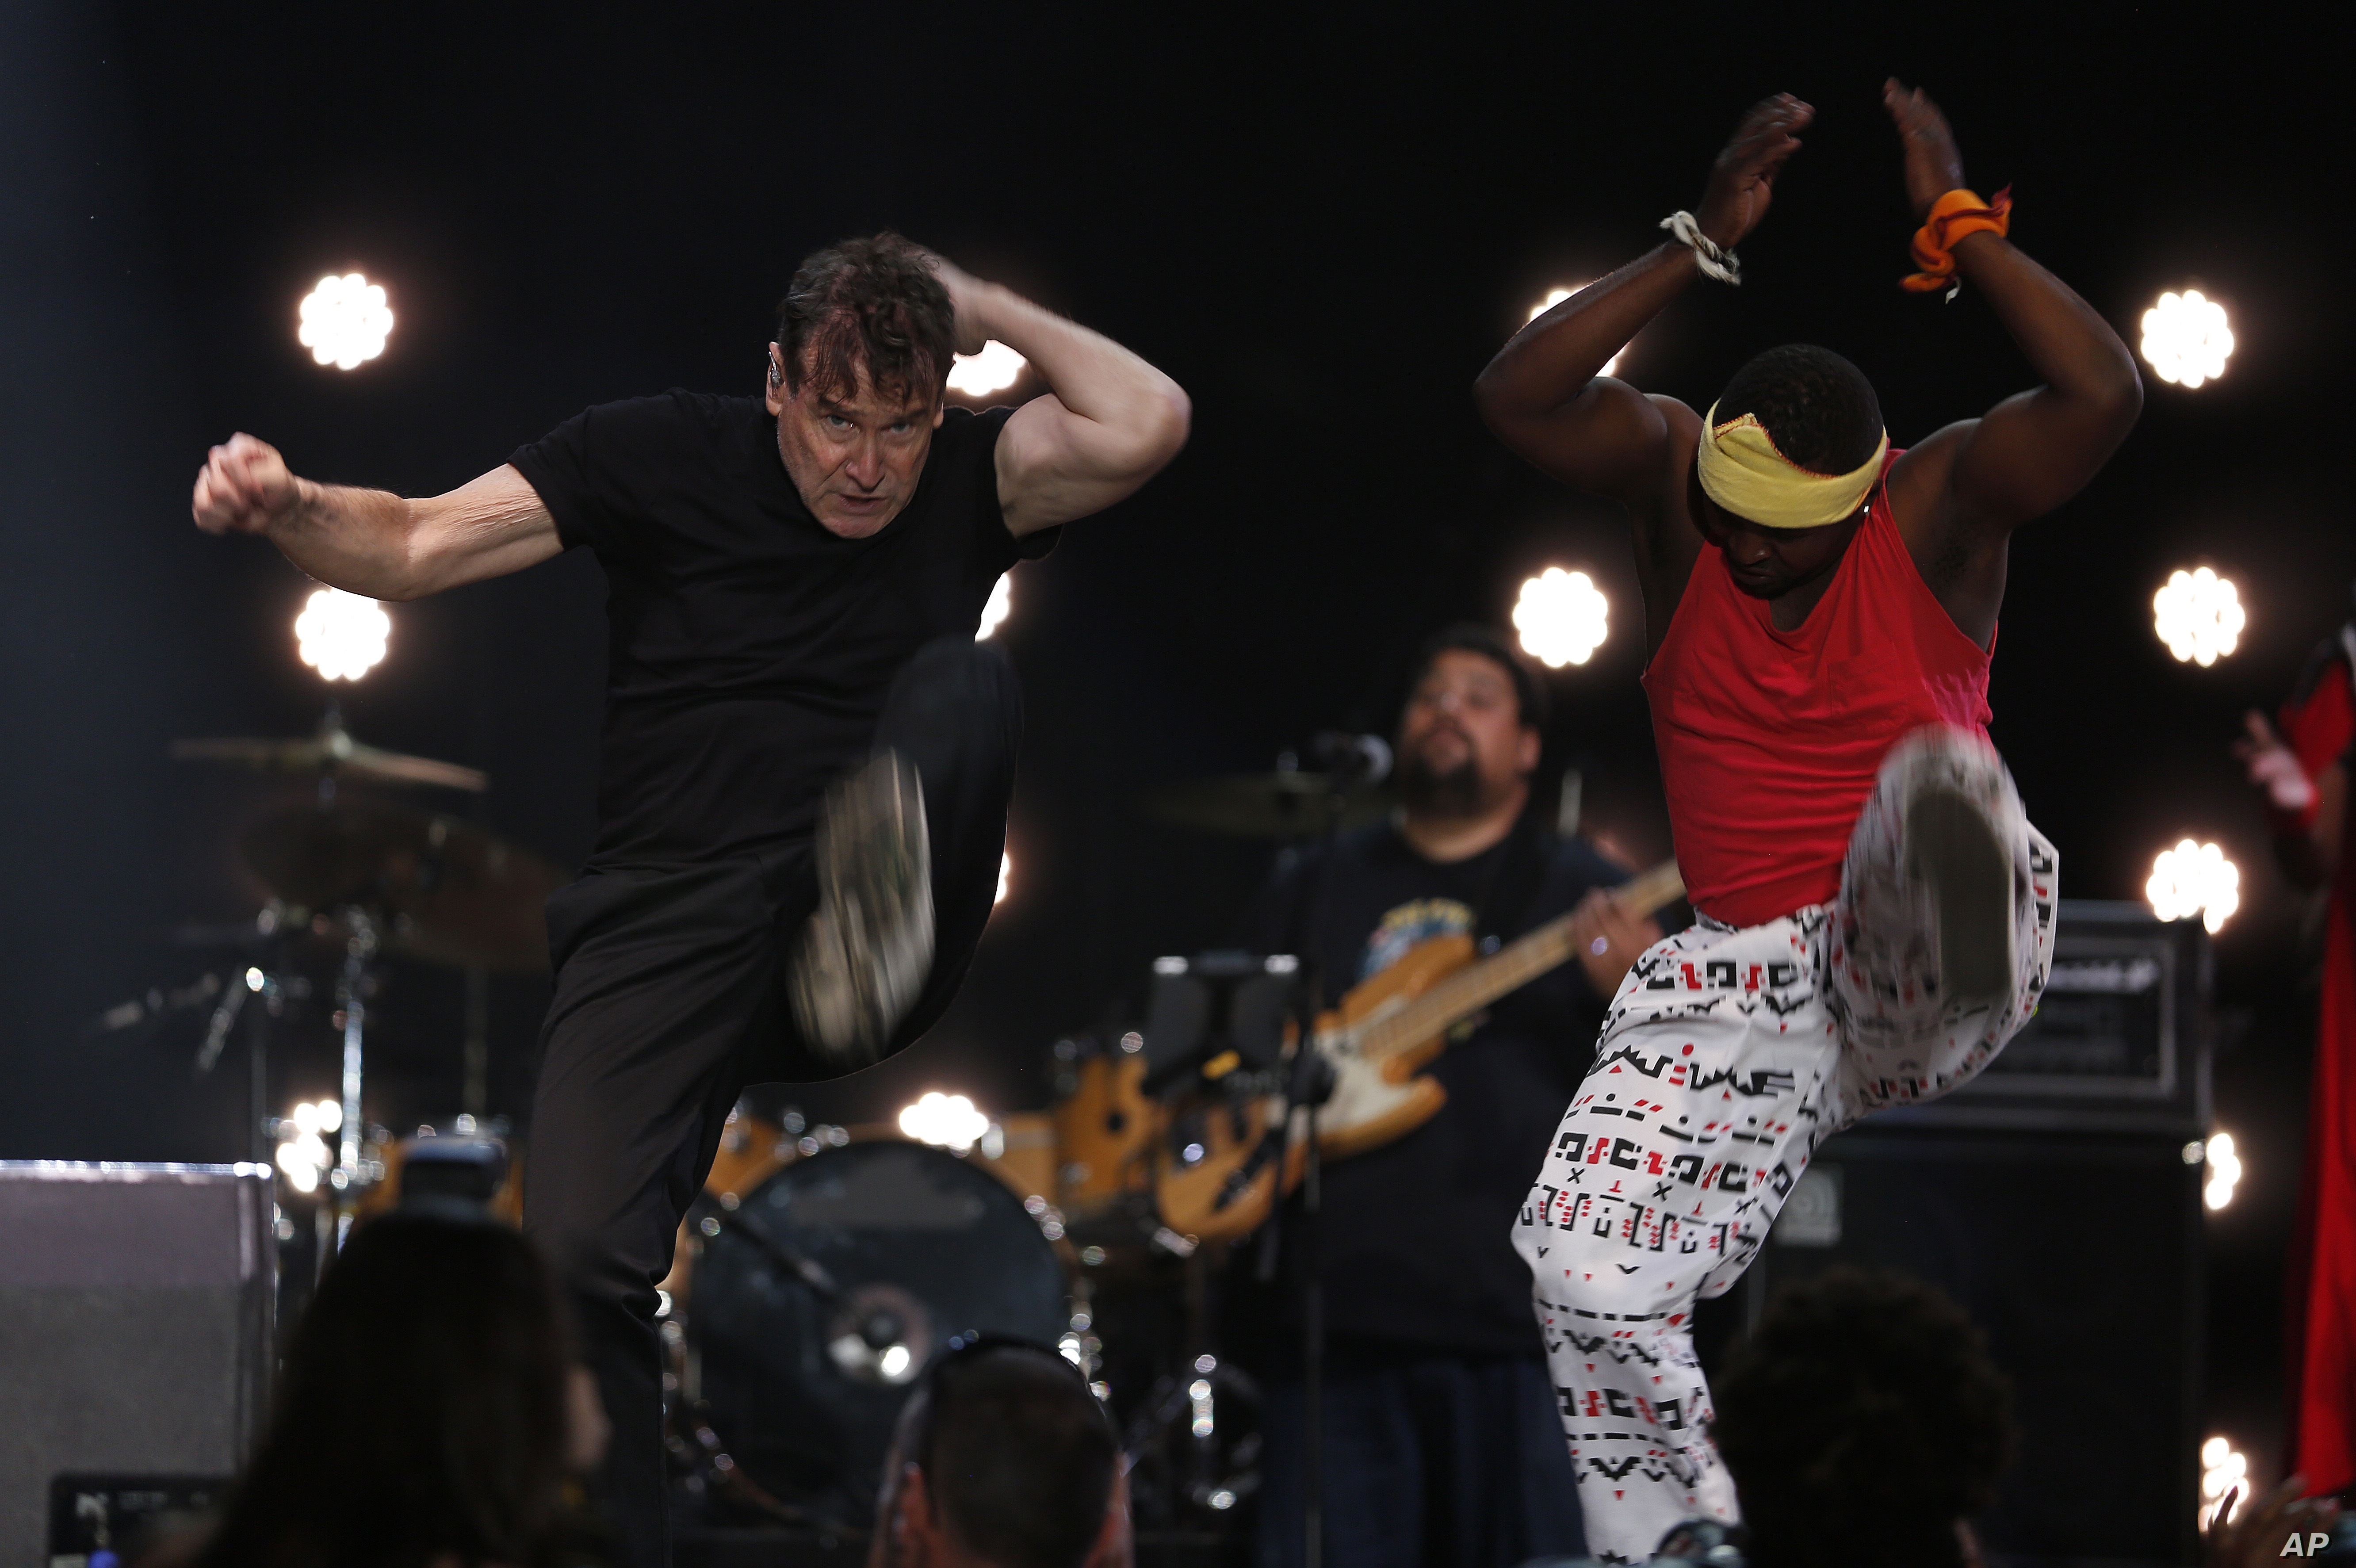 South Africa Mourns 'White Zulu' Johnny Clegg